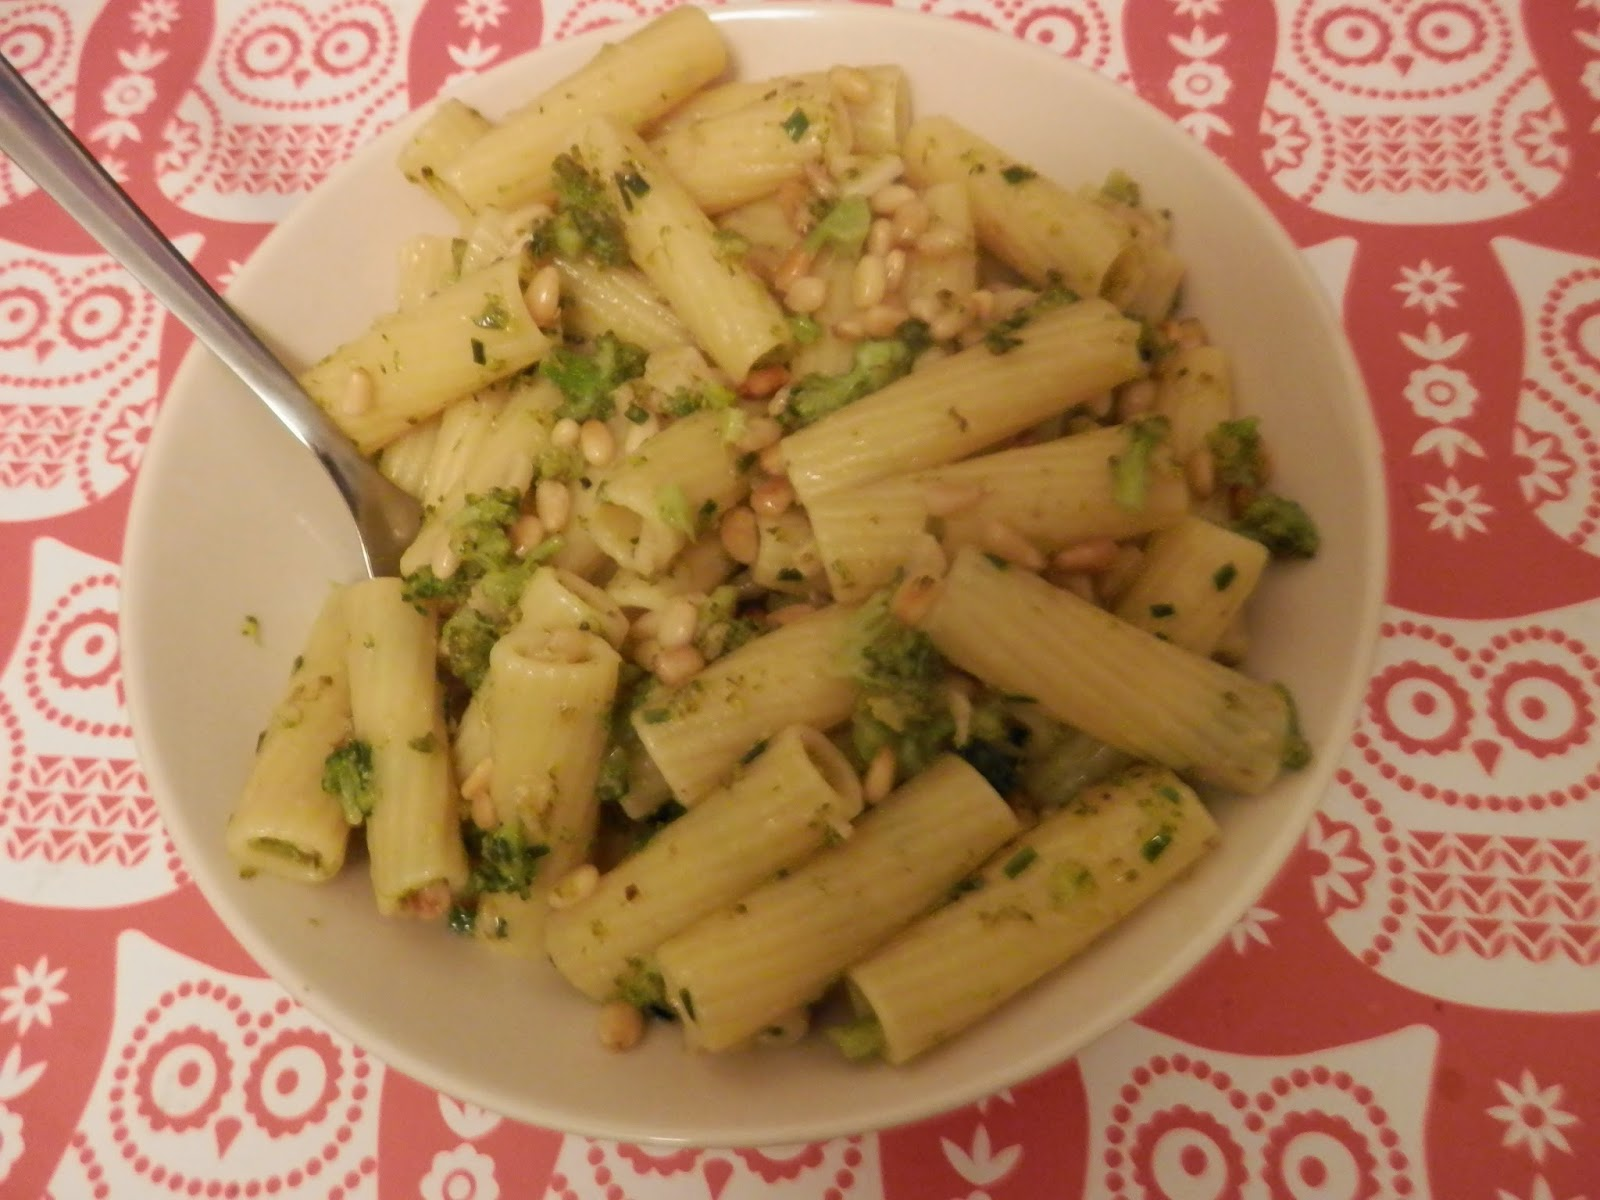 Vegan meal idea, vegan broccoli pasta. secondhandsusie.blogspot.co.uk